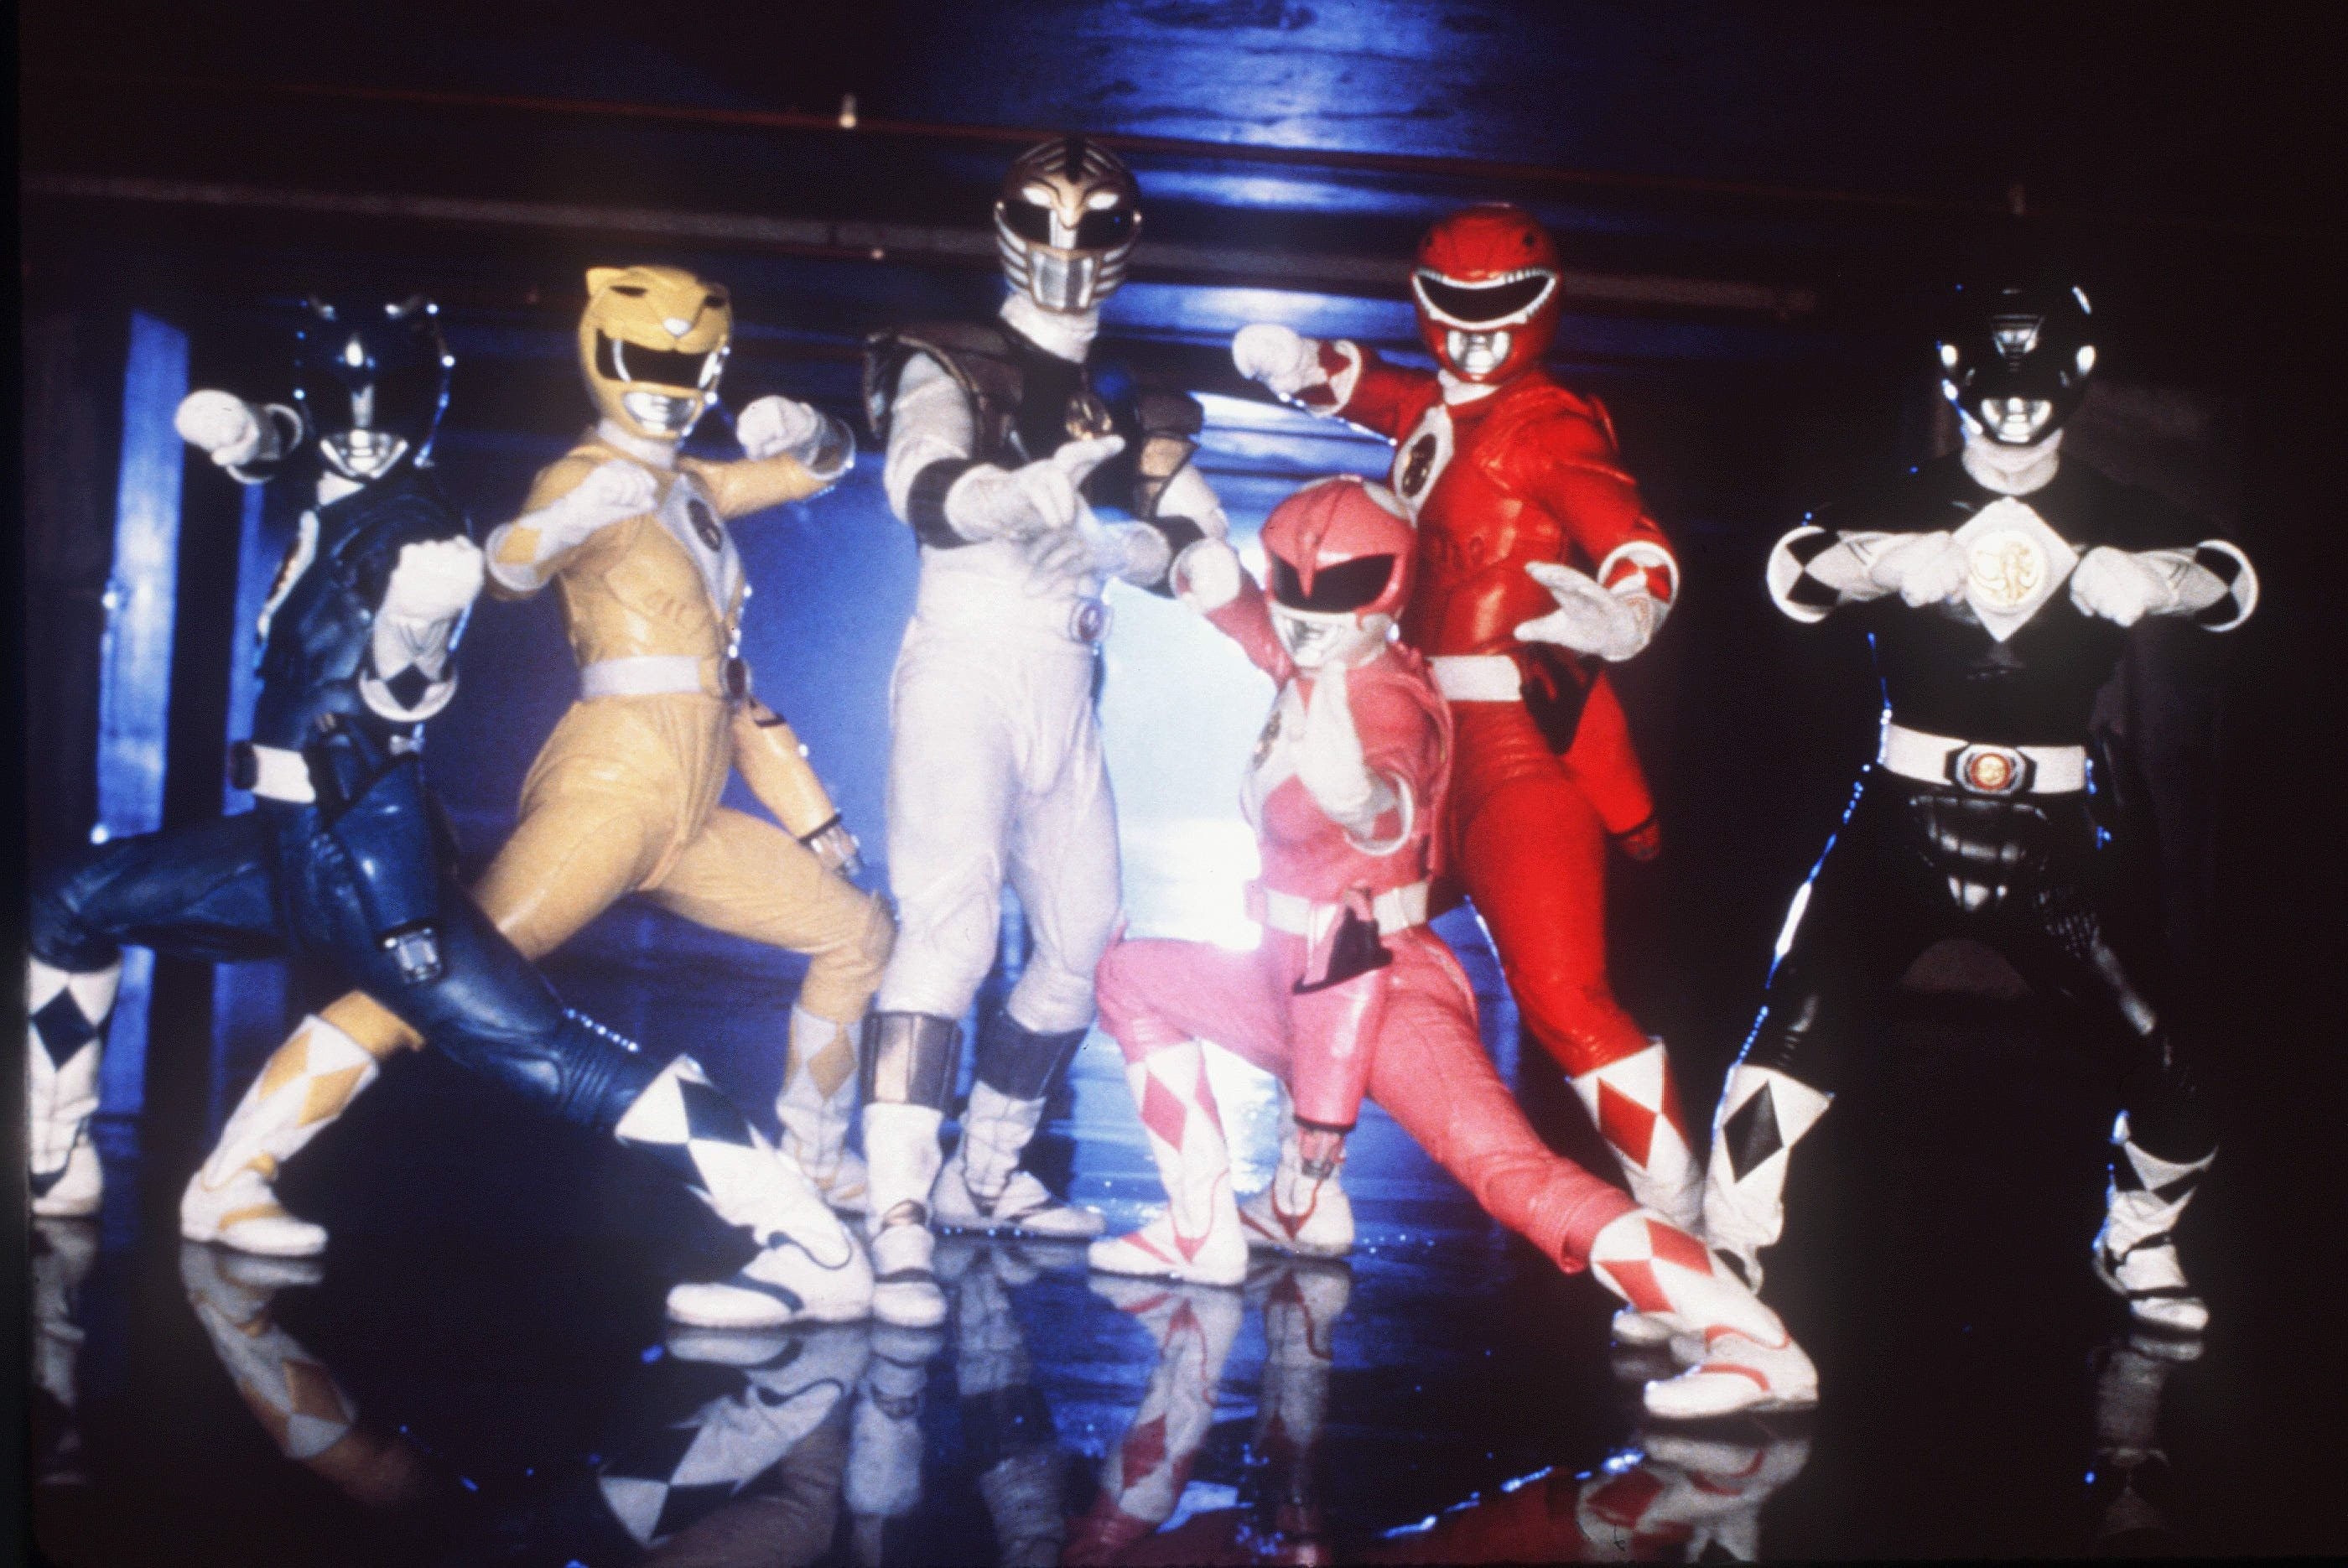 Editorial use only. No book cover usage. Mandatory Credit: Photo by Mark Vignes/Saban/Toei/Kobal/Shutterstock (5872710a) Mighty Morphin Power Rangers The Movie (1995) Mighty Morphin Power Rangers The Movie - 1995 Director: Bryan Spicer Saban/Toei USA Film Portrait Family